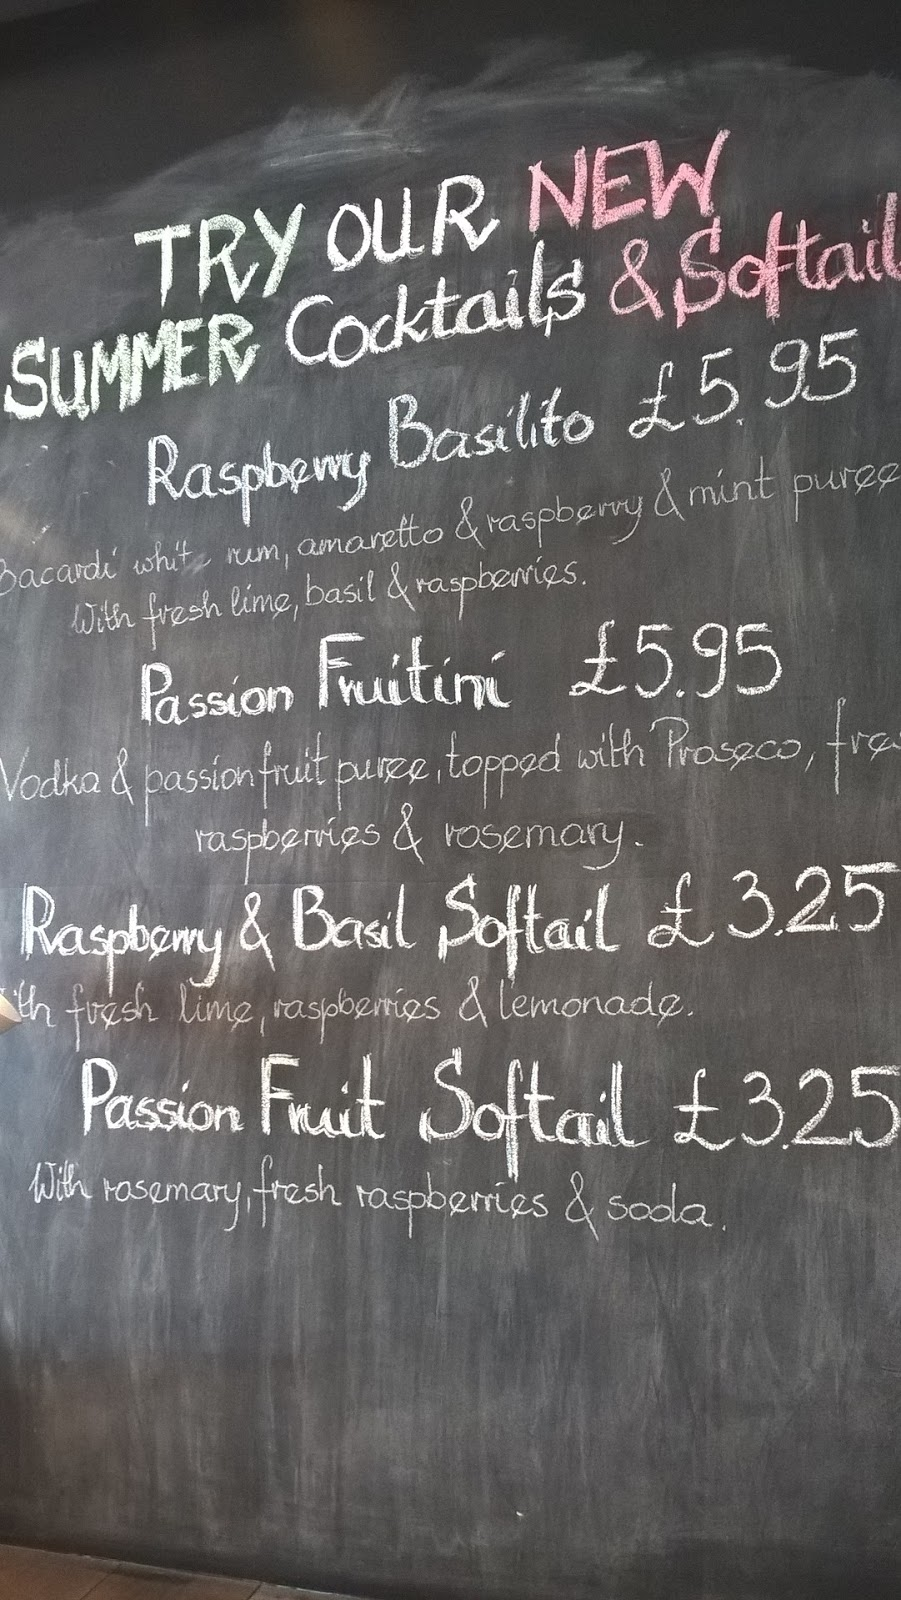 Zizzi Cardiff Bay menu blackboard promoting summer cocktails